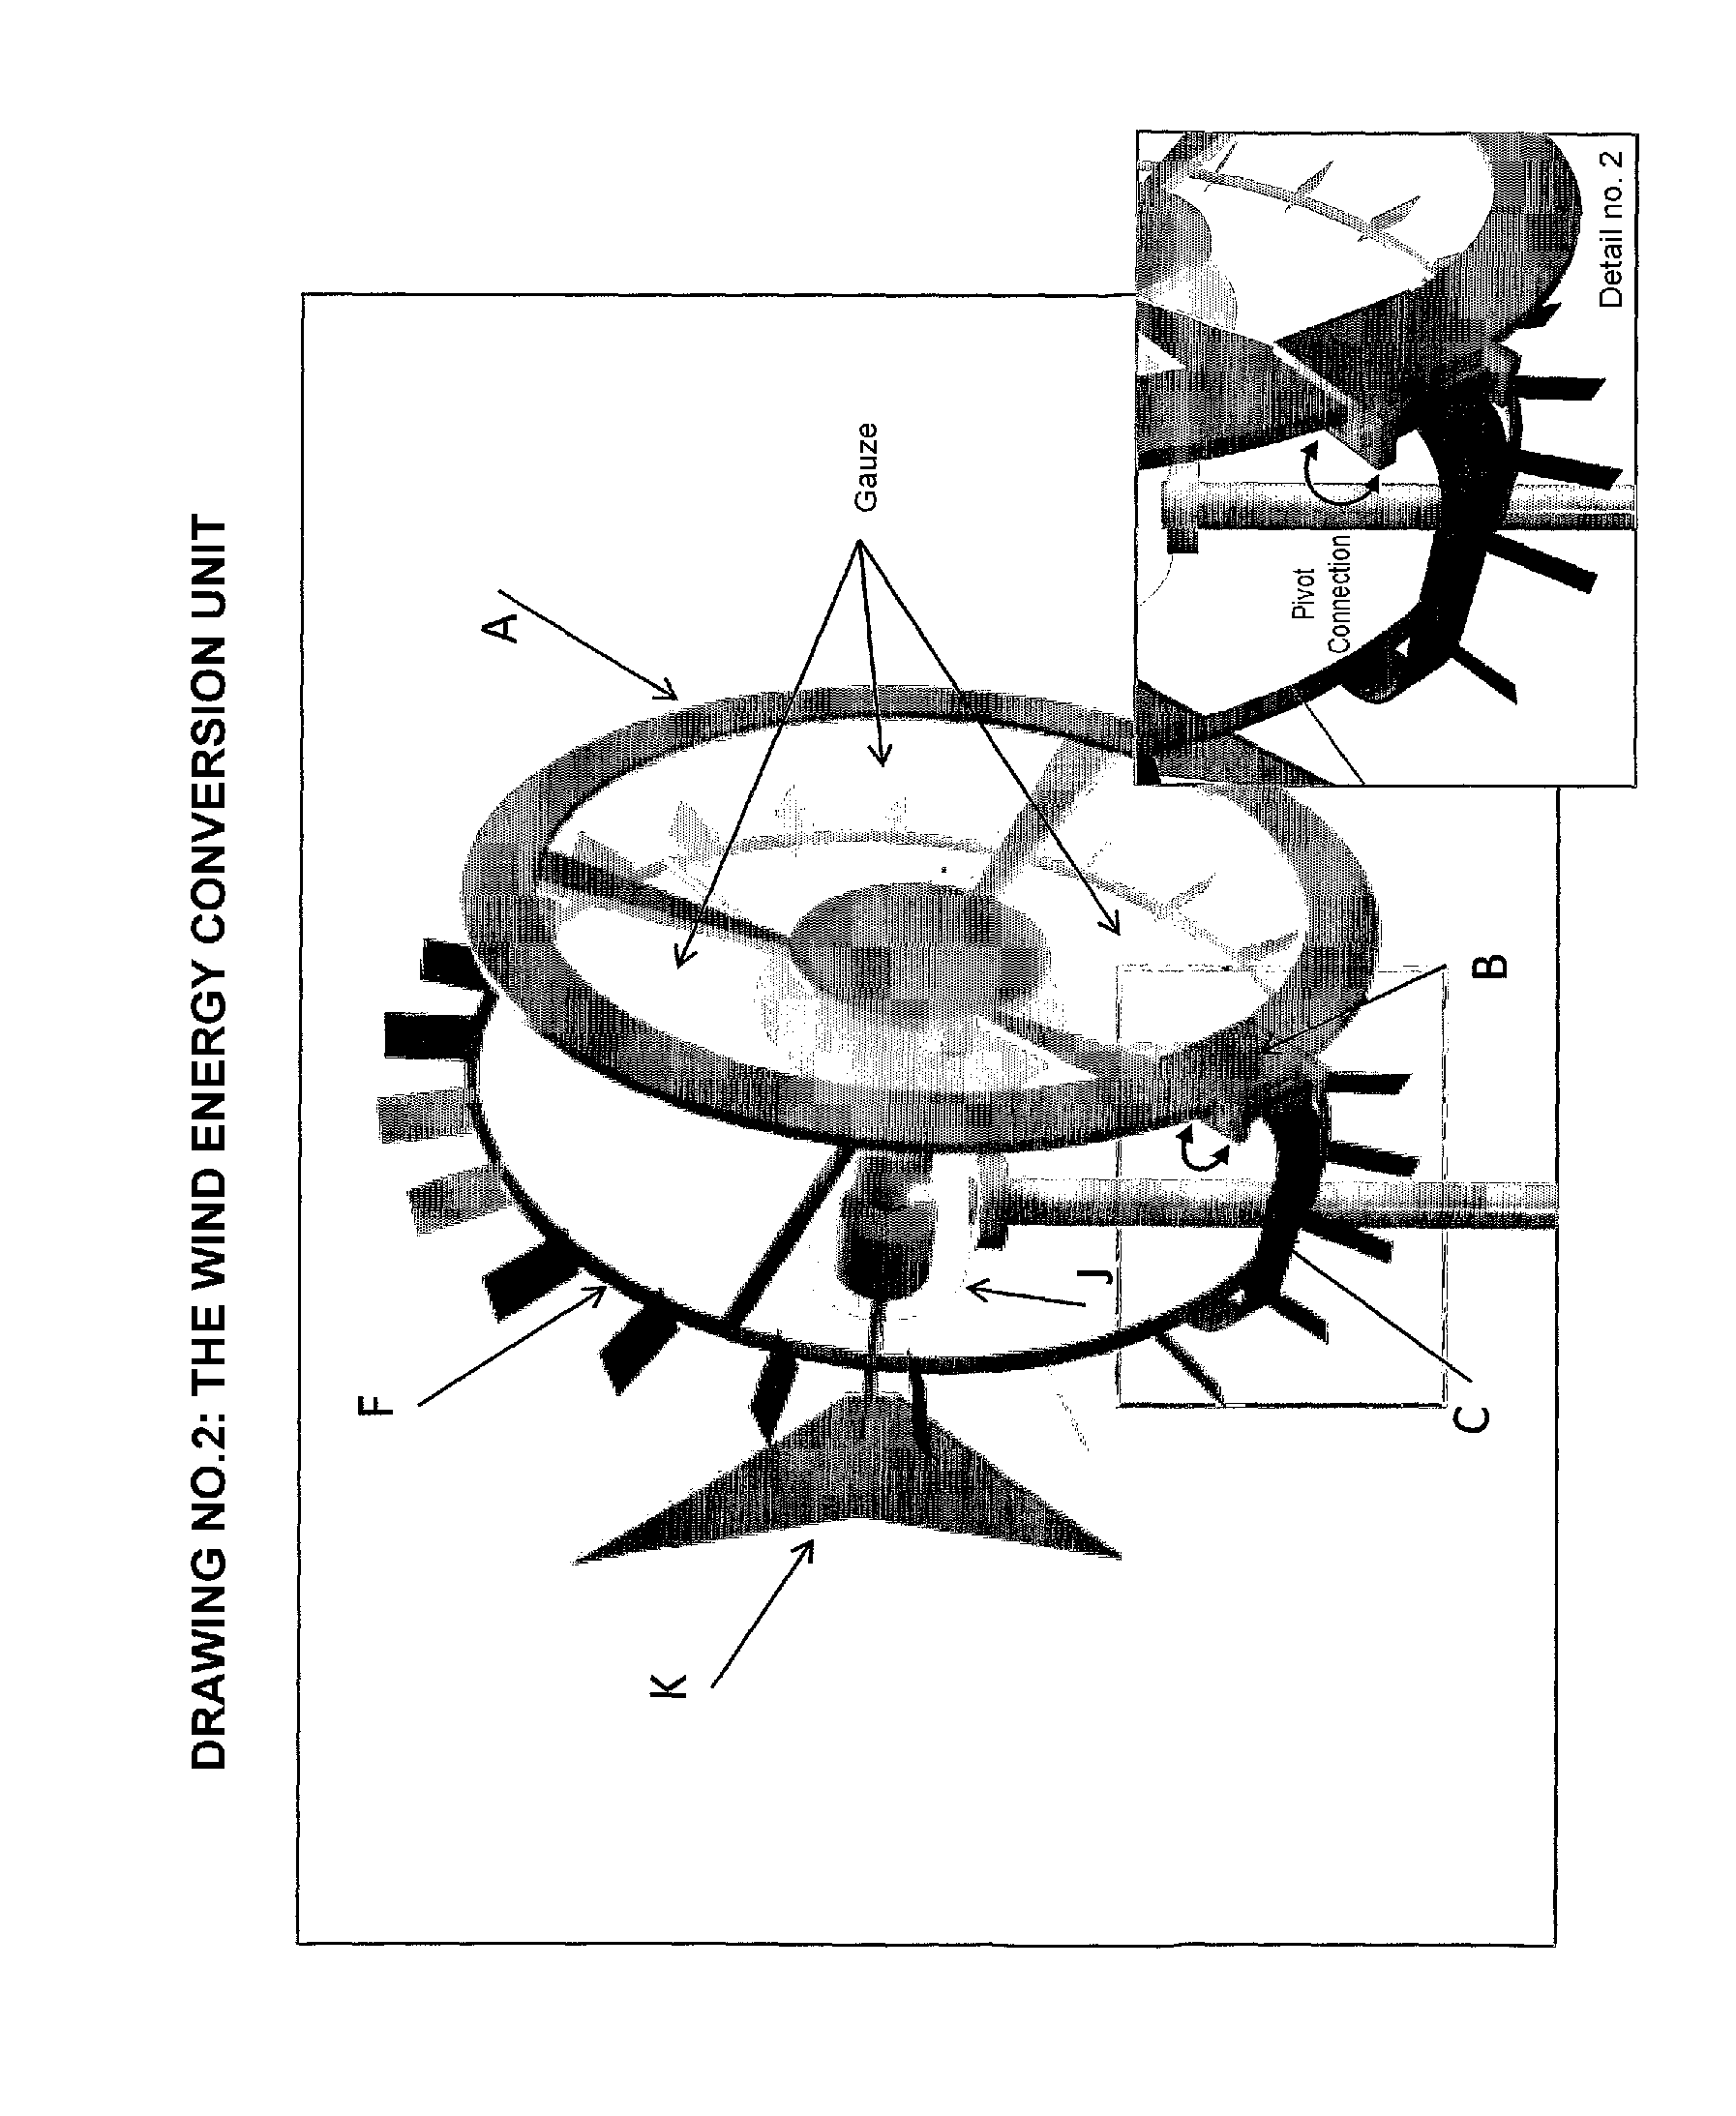 Patent Drawing Sustainable Energy